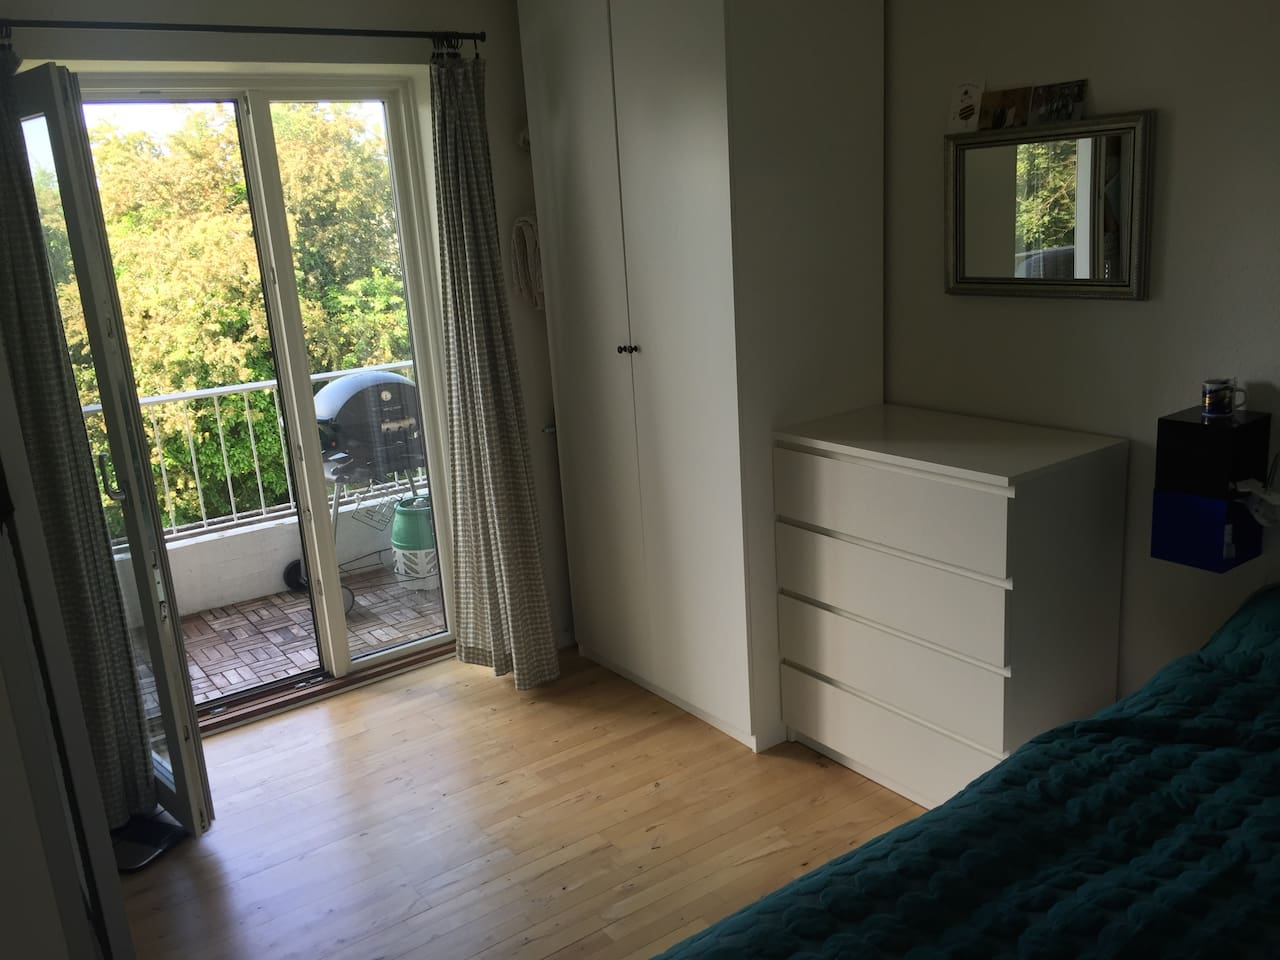 Bedroom with access to the open balcony